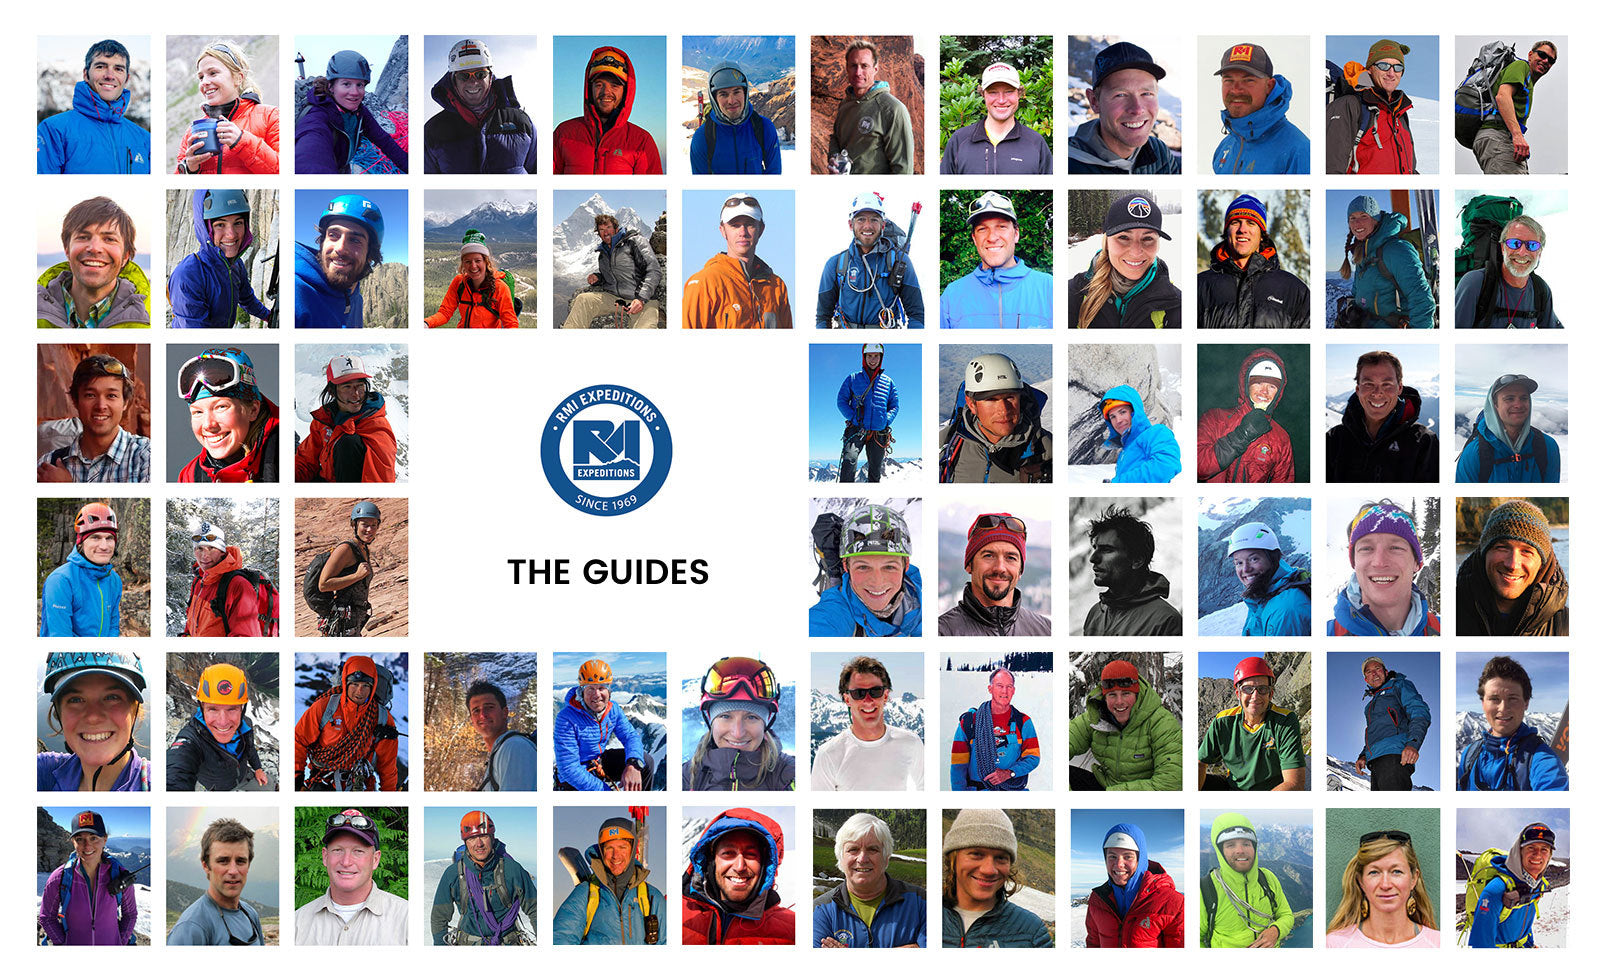 The Guide Team